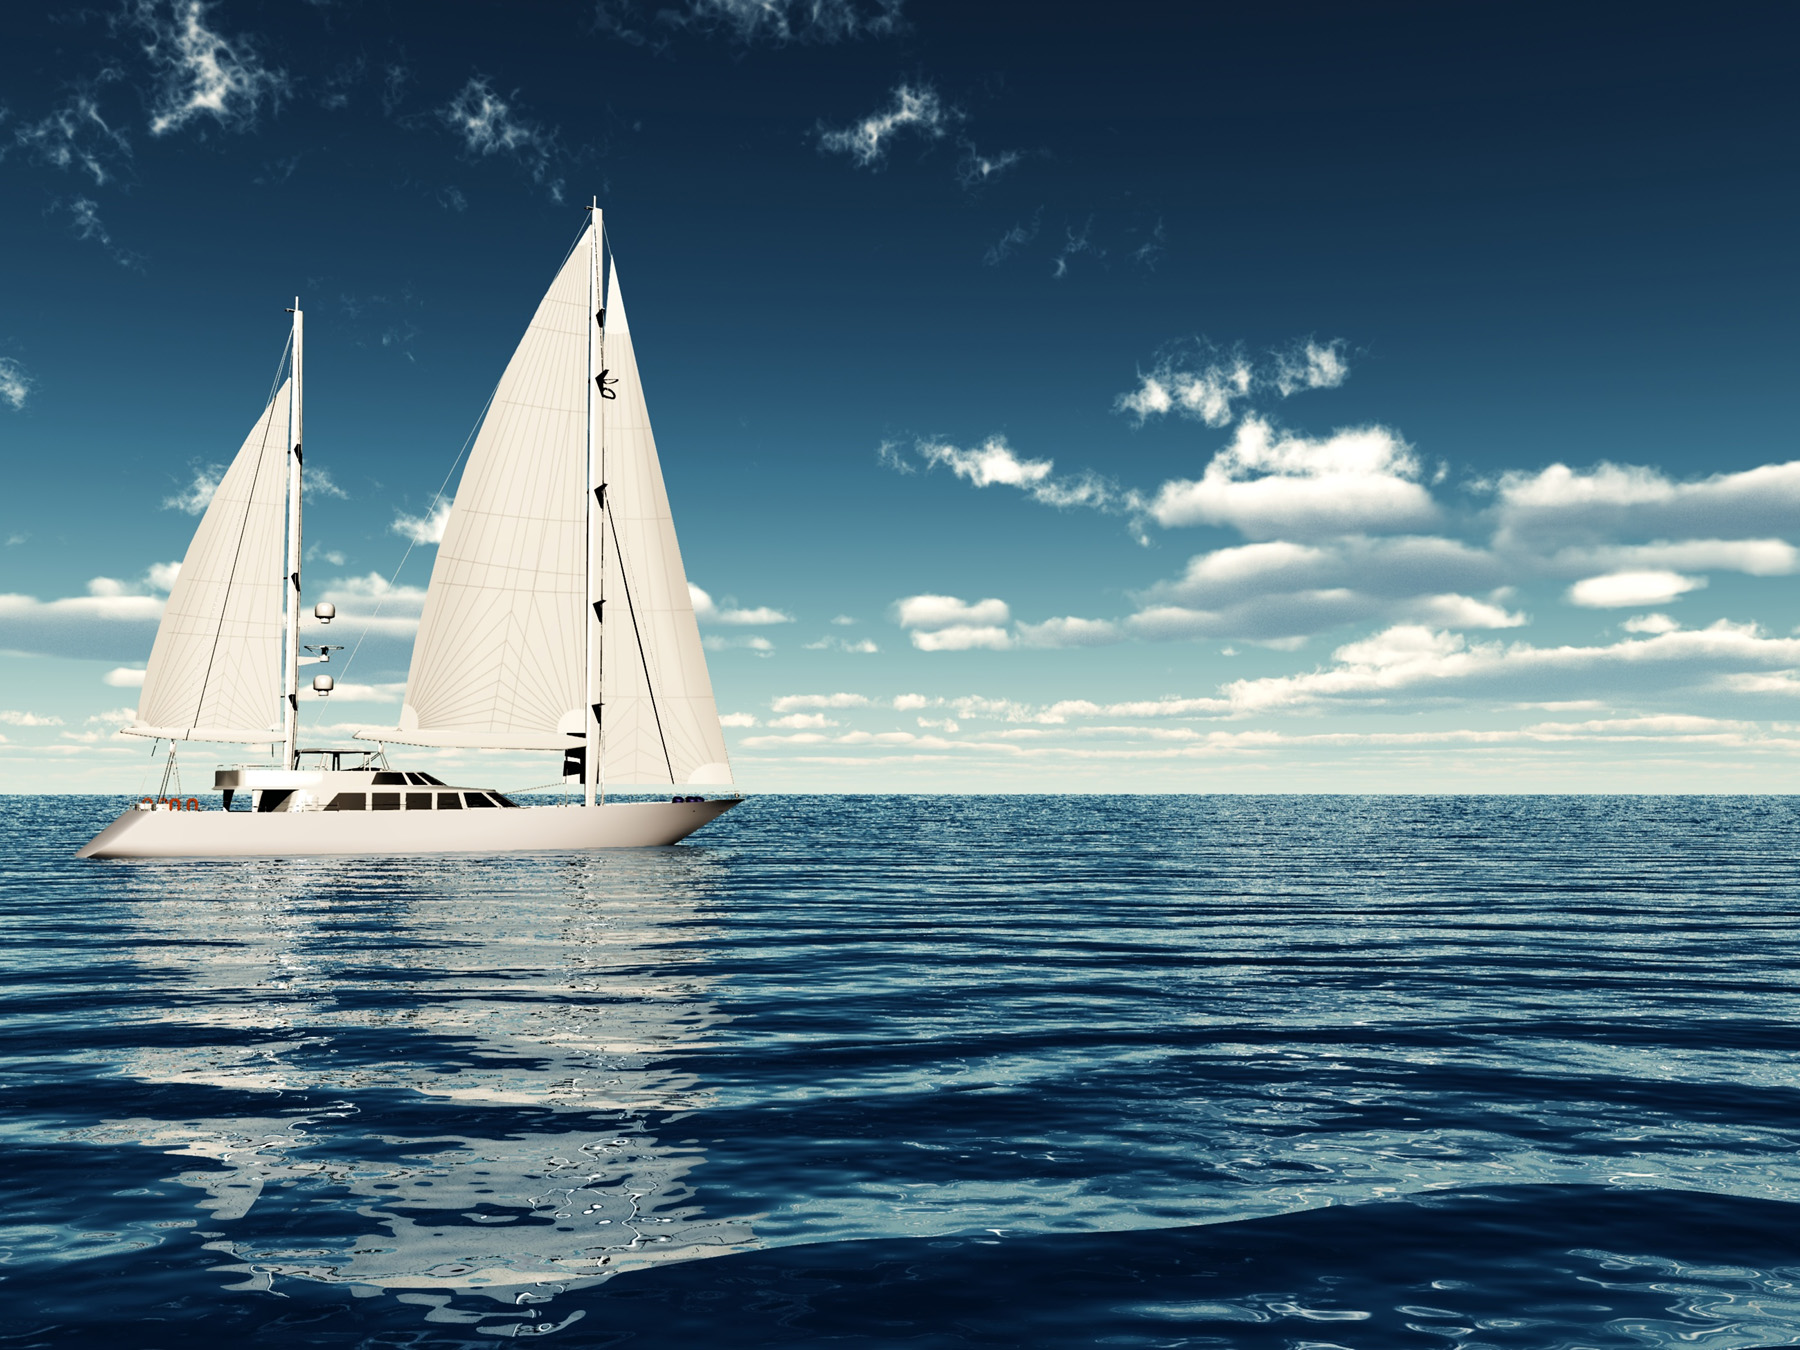 Cloud and in the sea of sailboats 52301